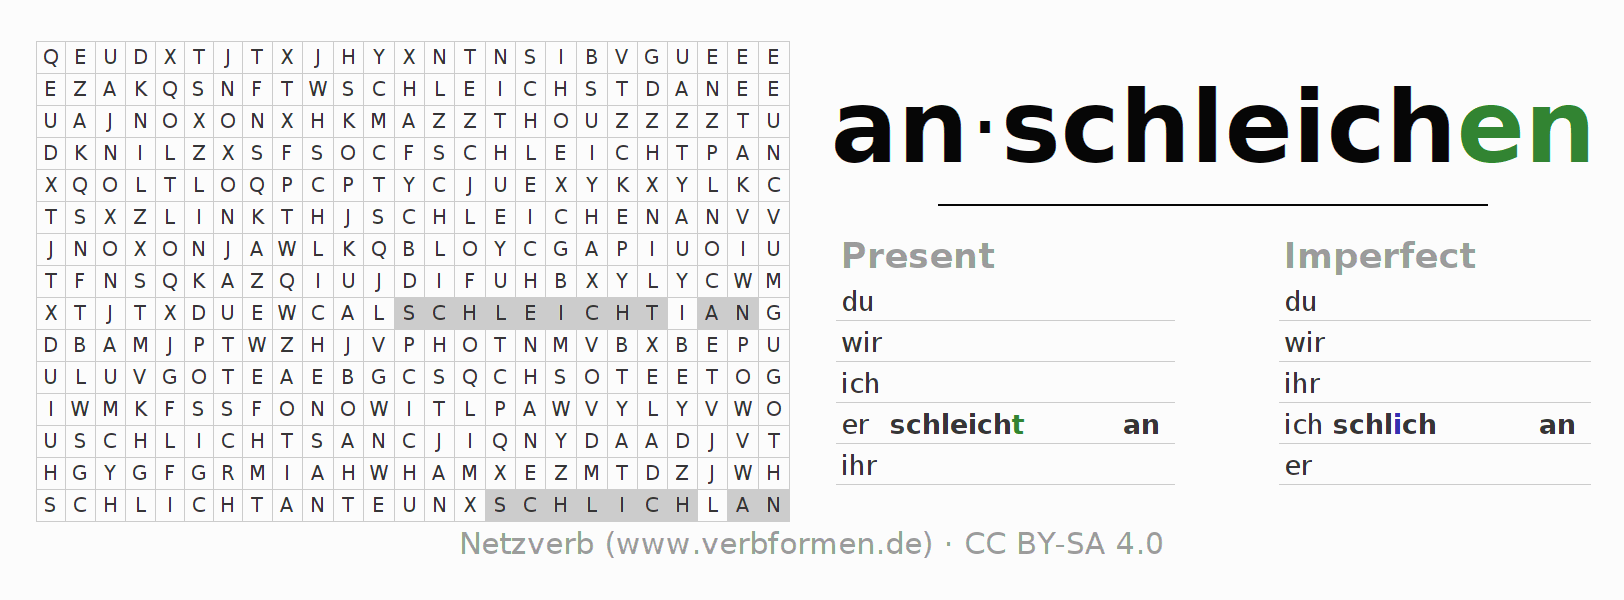 Word search puzzle for the conjugation of the verb anschleichen (hat)